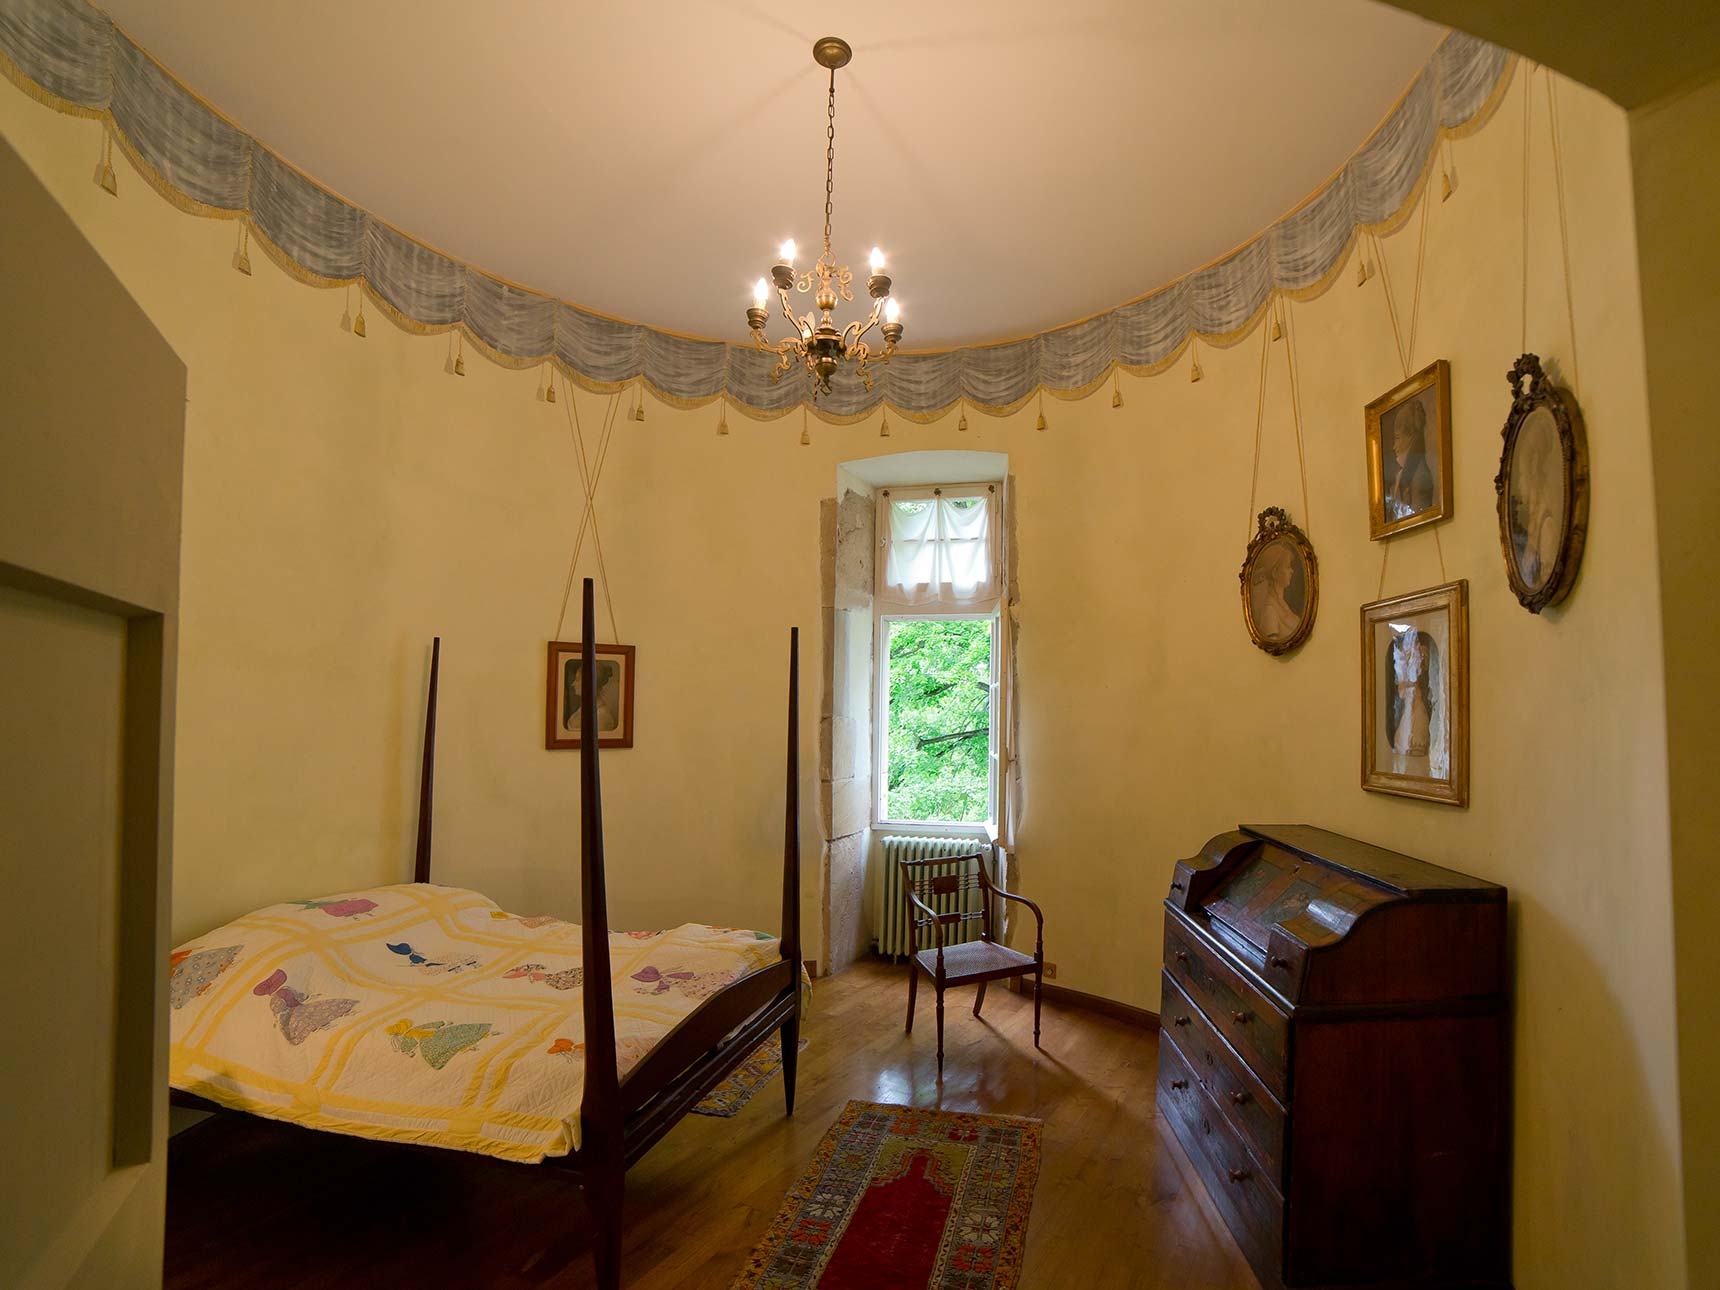 American bedroom / Chambre américaine